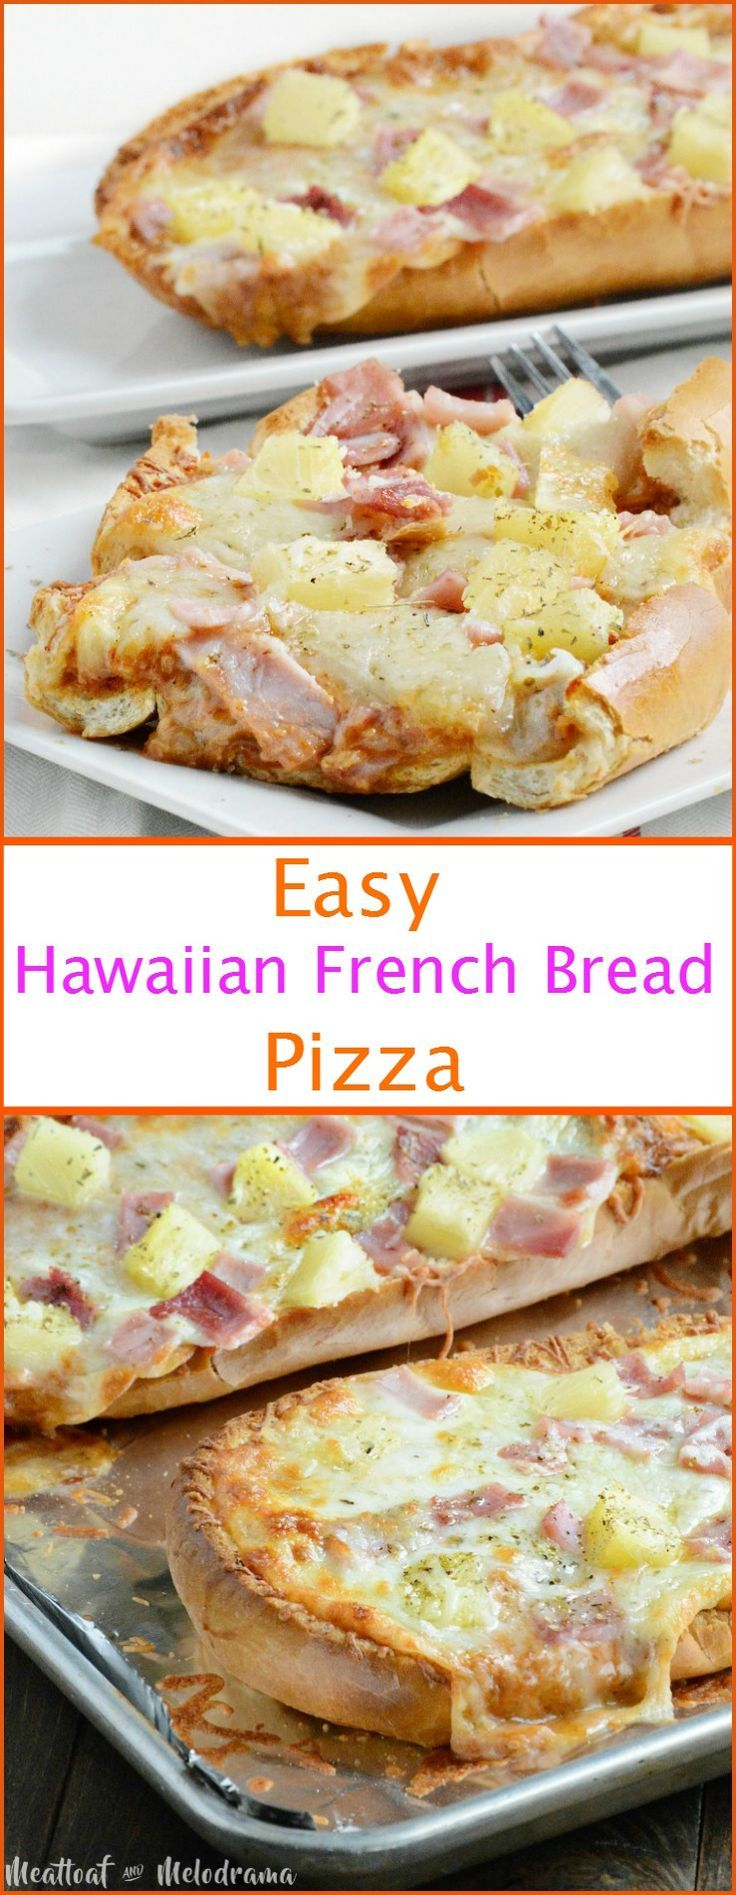 Easy Hawaiian French Bread Pizza - A quick and easy frugal dinner made with leftover ham, pineapple and tangy barbecue sauce. from Meatloaf and Melodrama